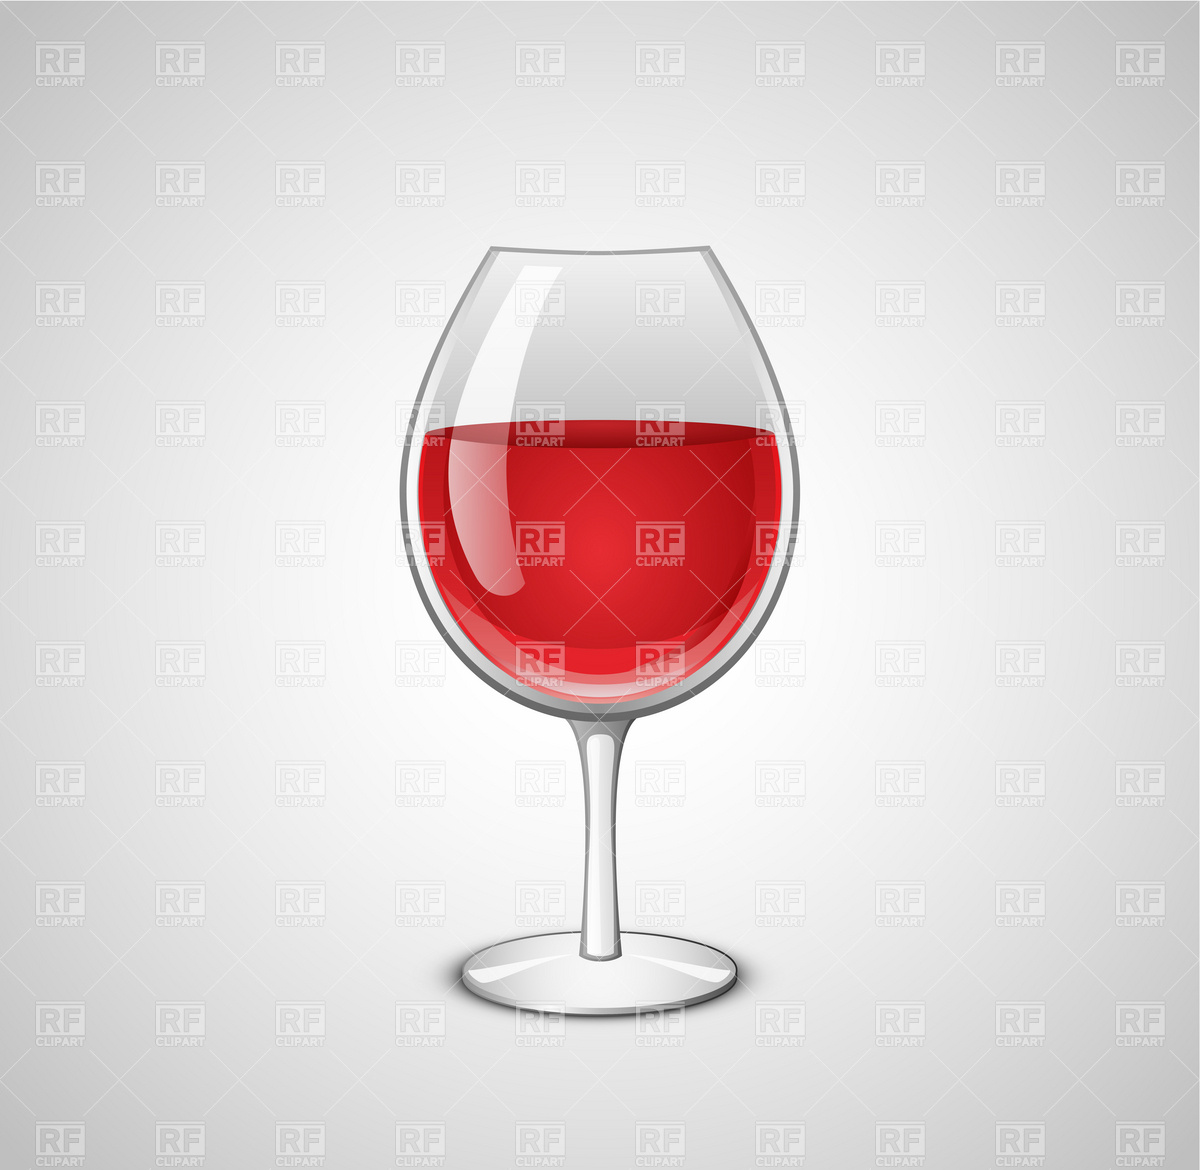 Wine Glass Vector Illustration  Wineglass With Red Wine 6055 Food